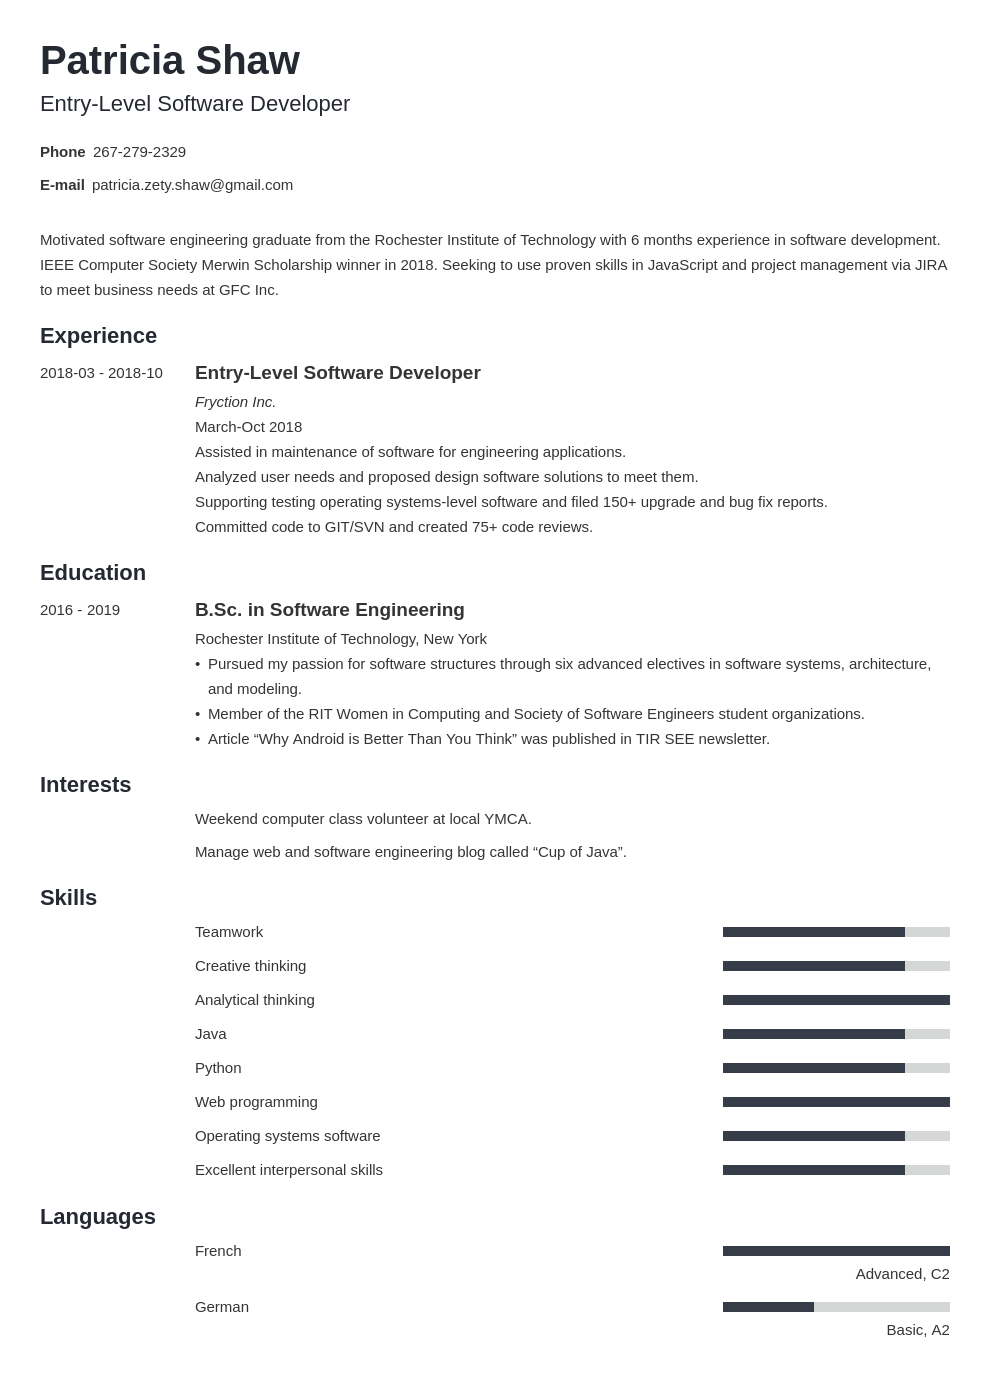 19++ Entry level software engineer resume examples ideas in 2021